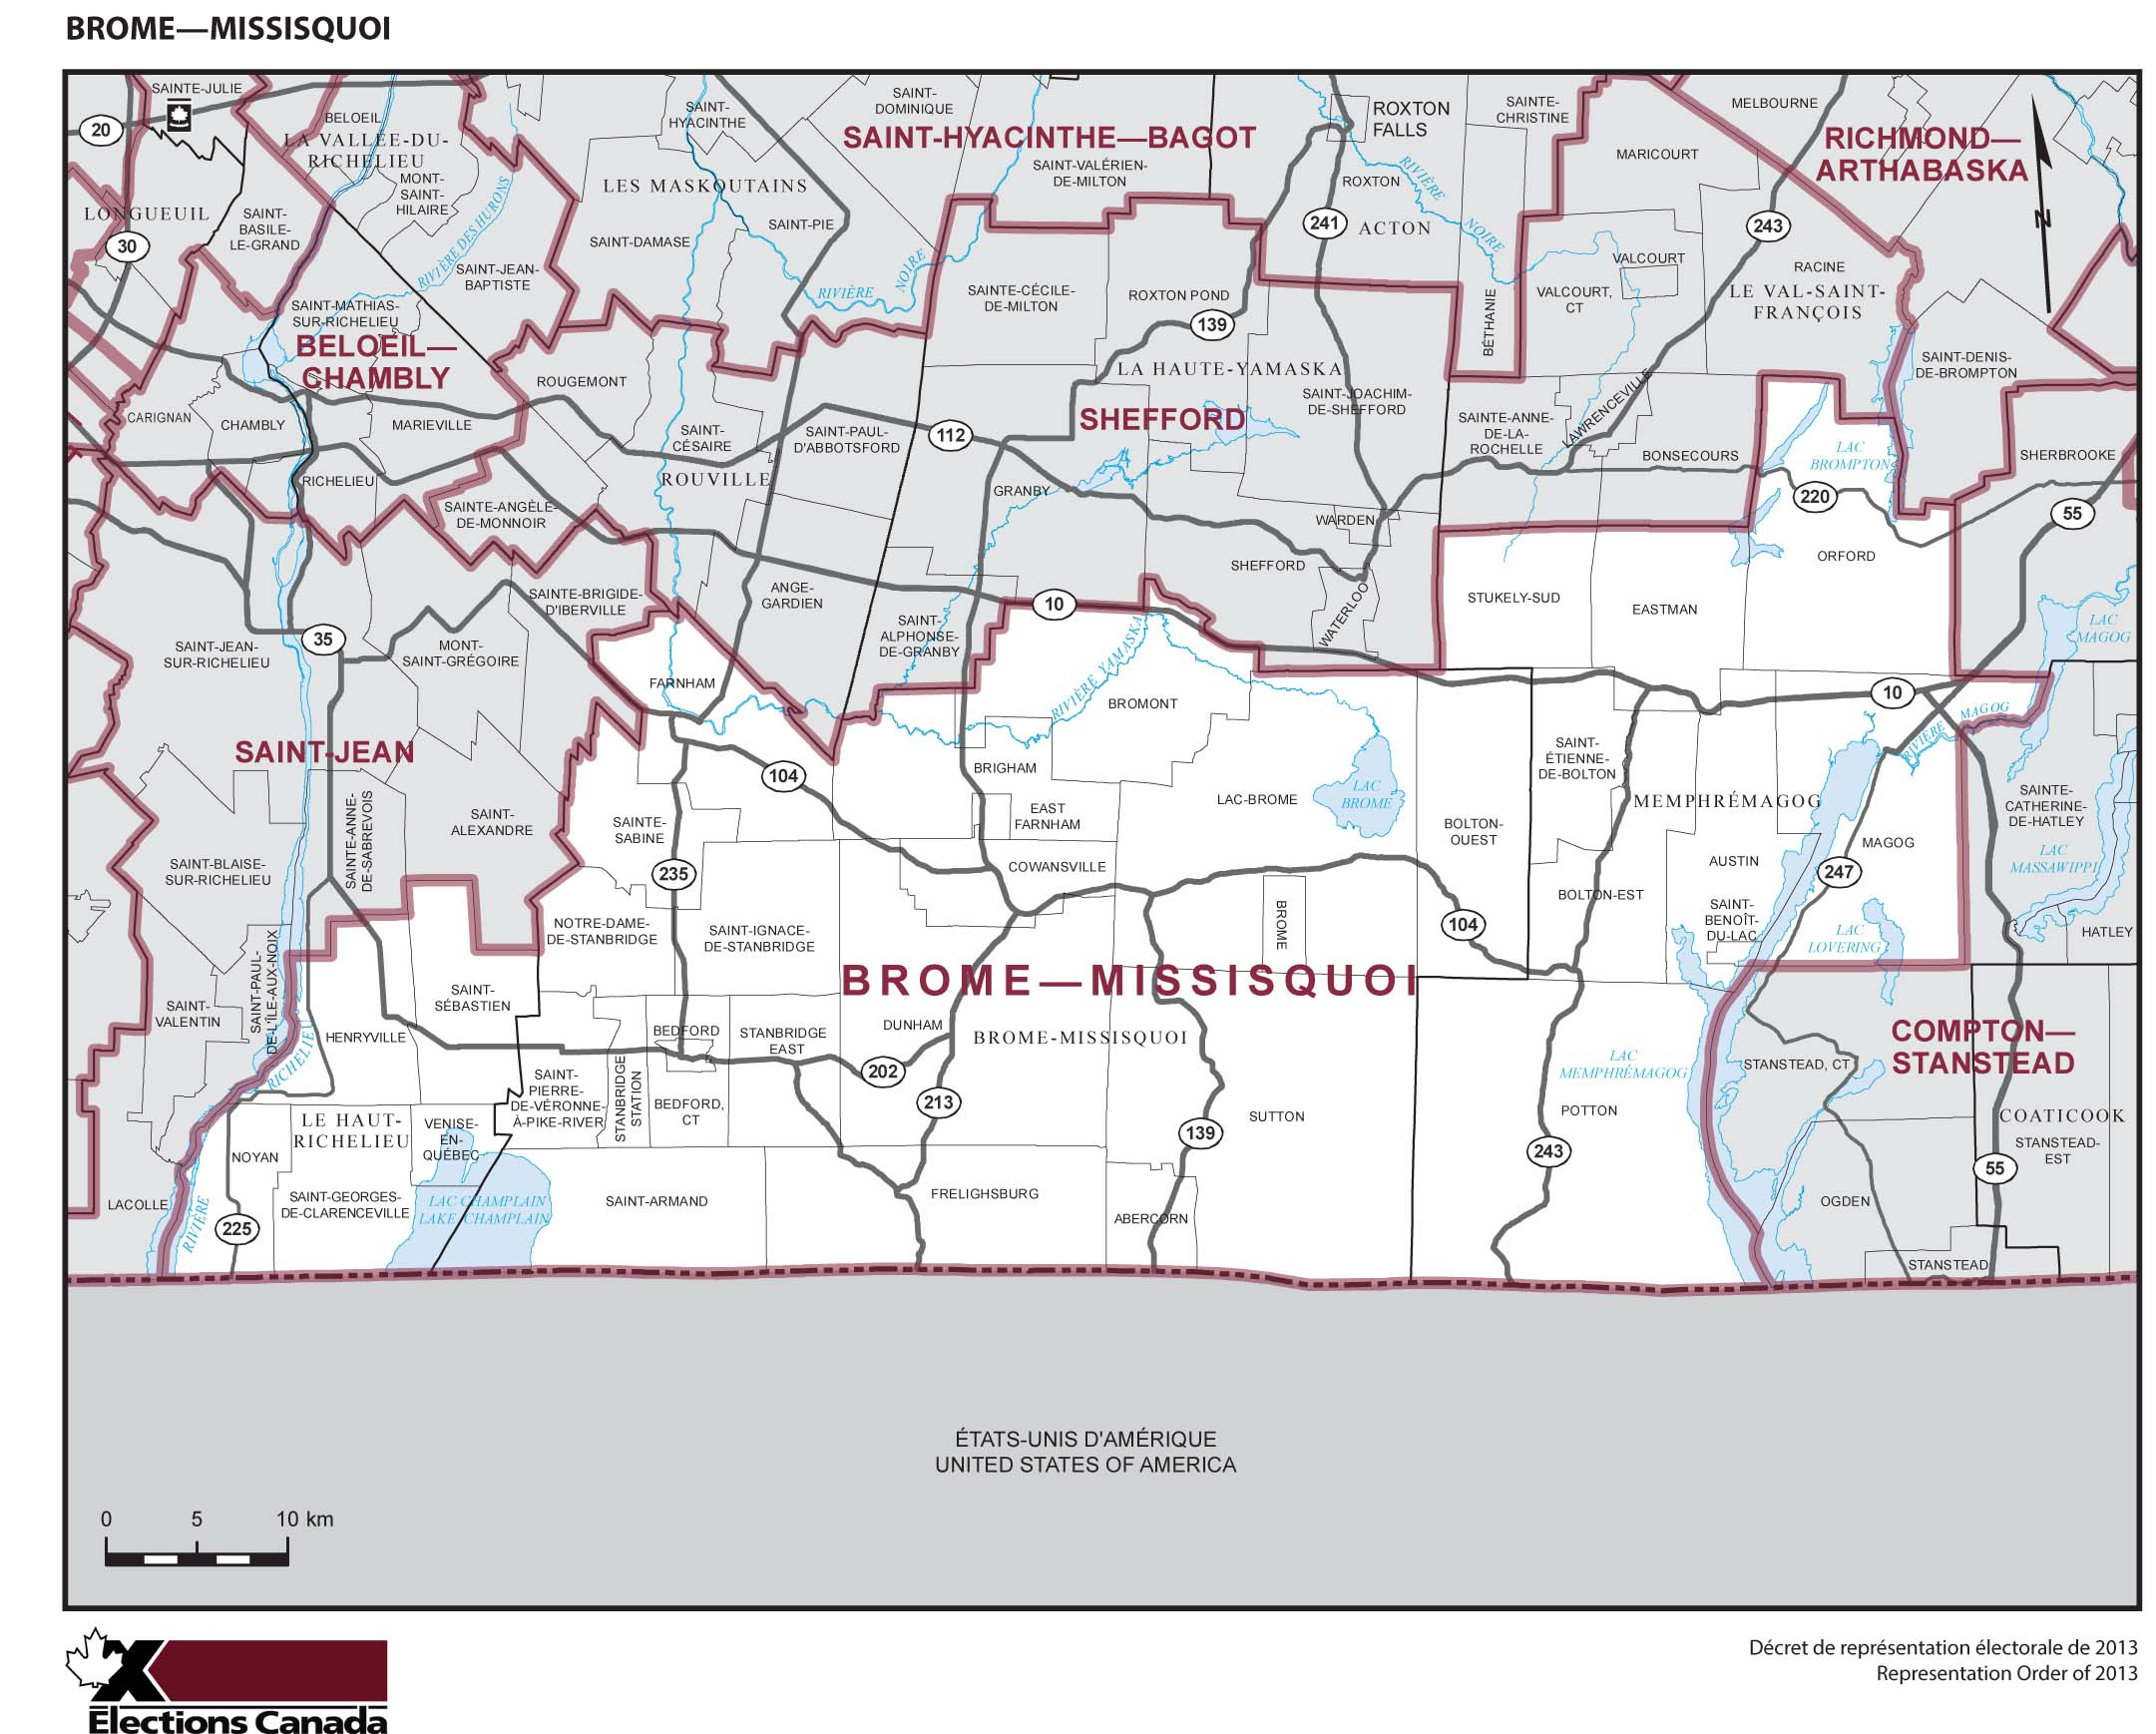 Map: Brome--Missisquoi, Federal electoral district, 2013 Representation Order (in white), Quebec